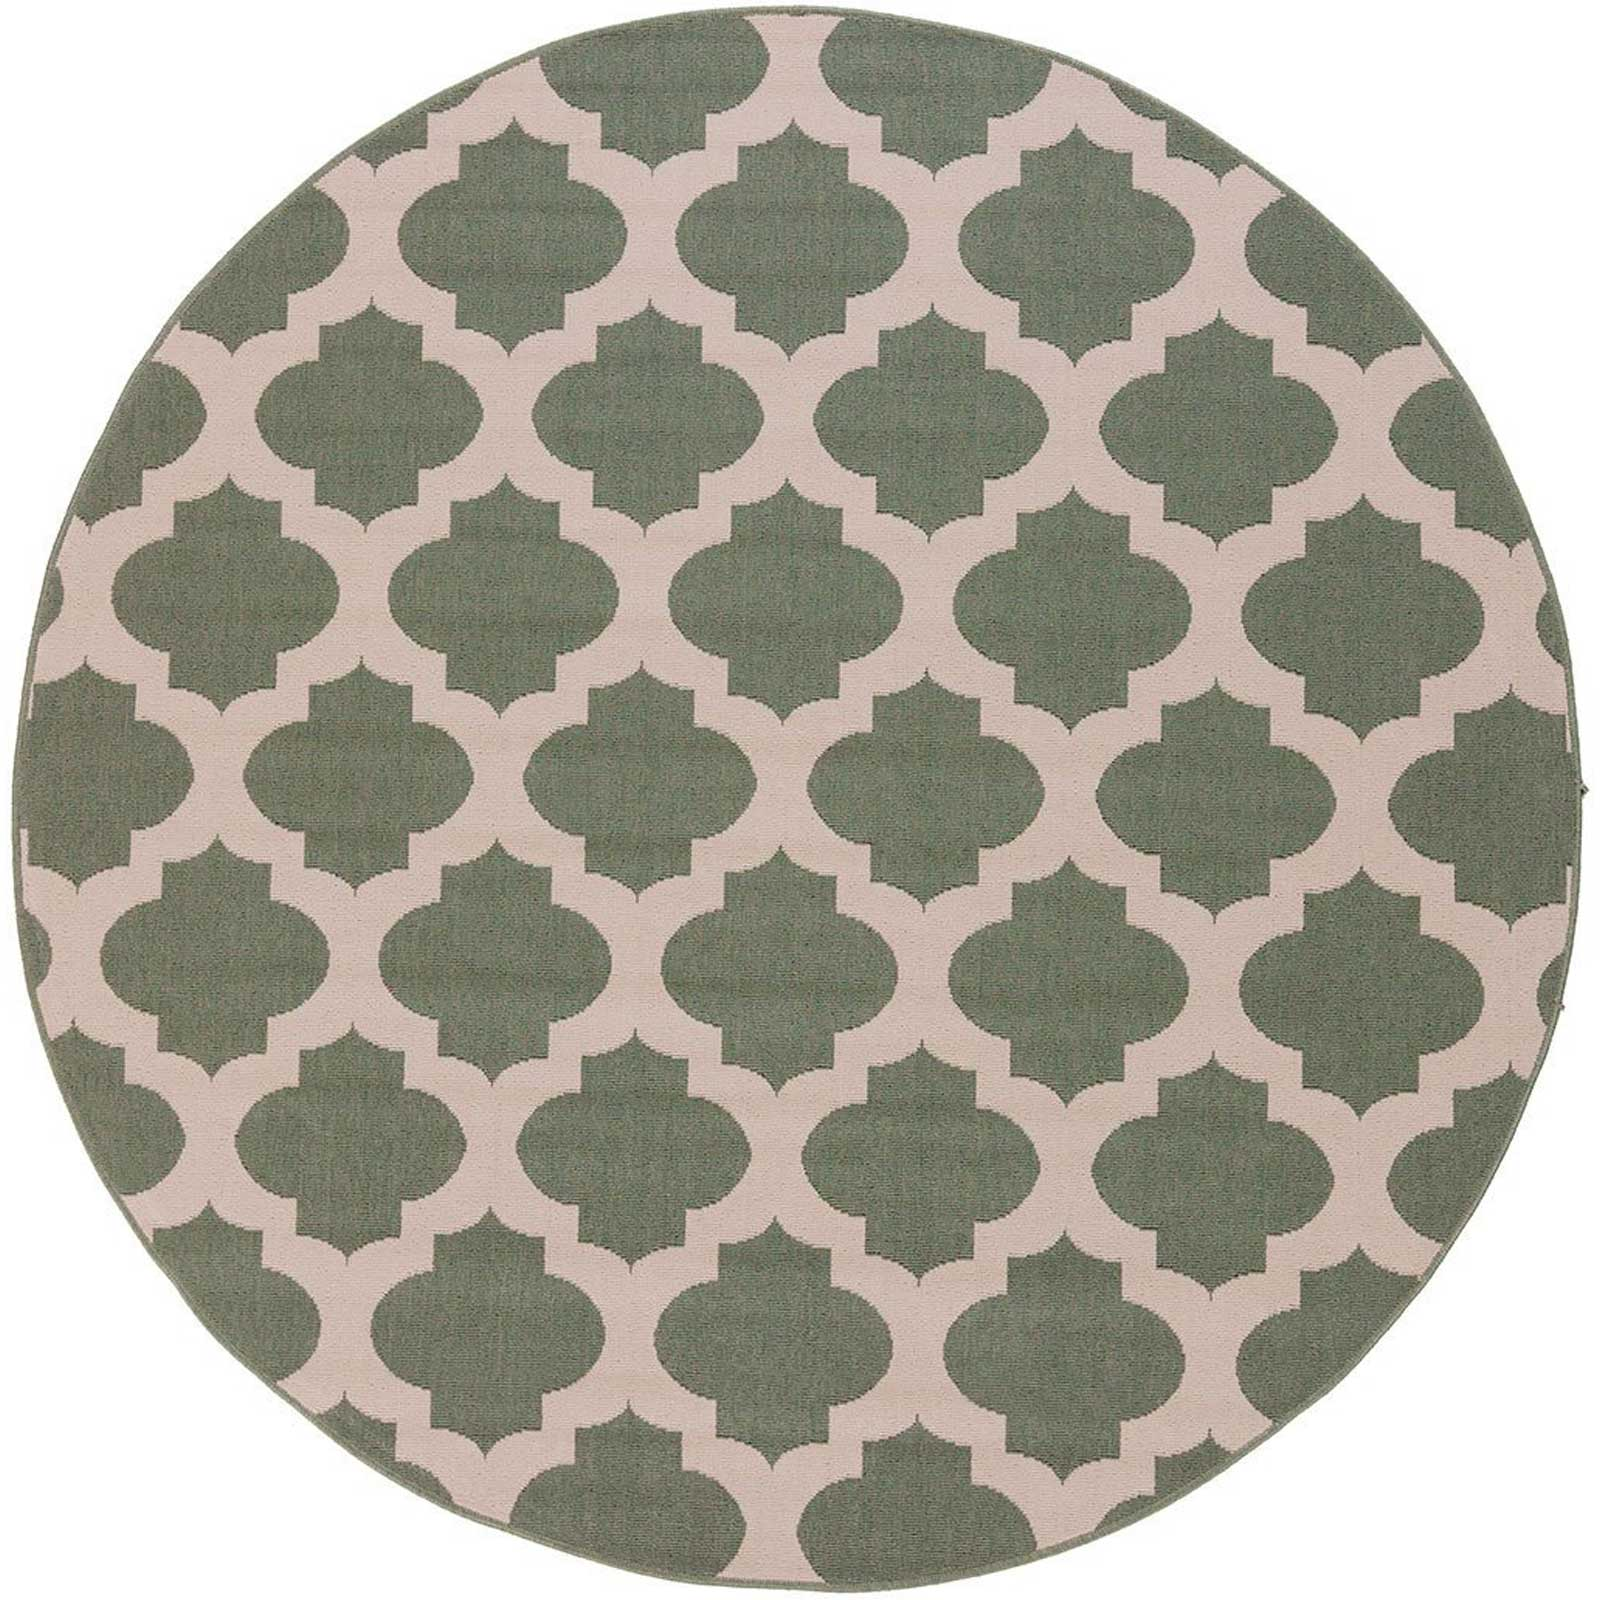 Alfresco Lattice Moss/Beige Round Rug